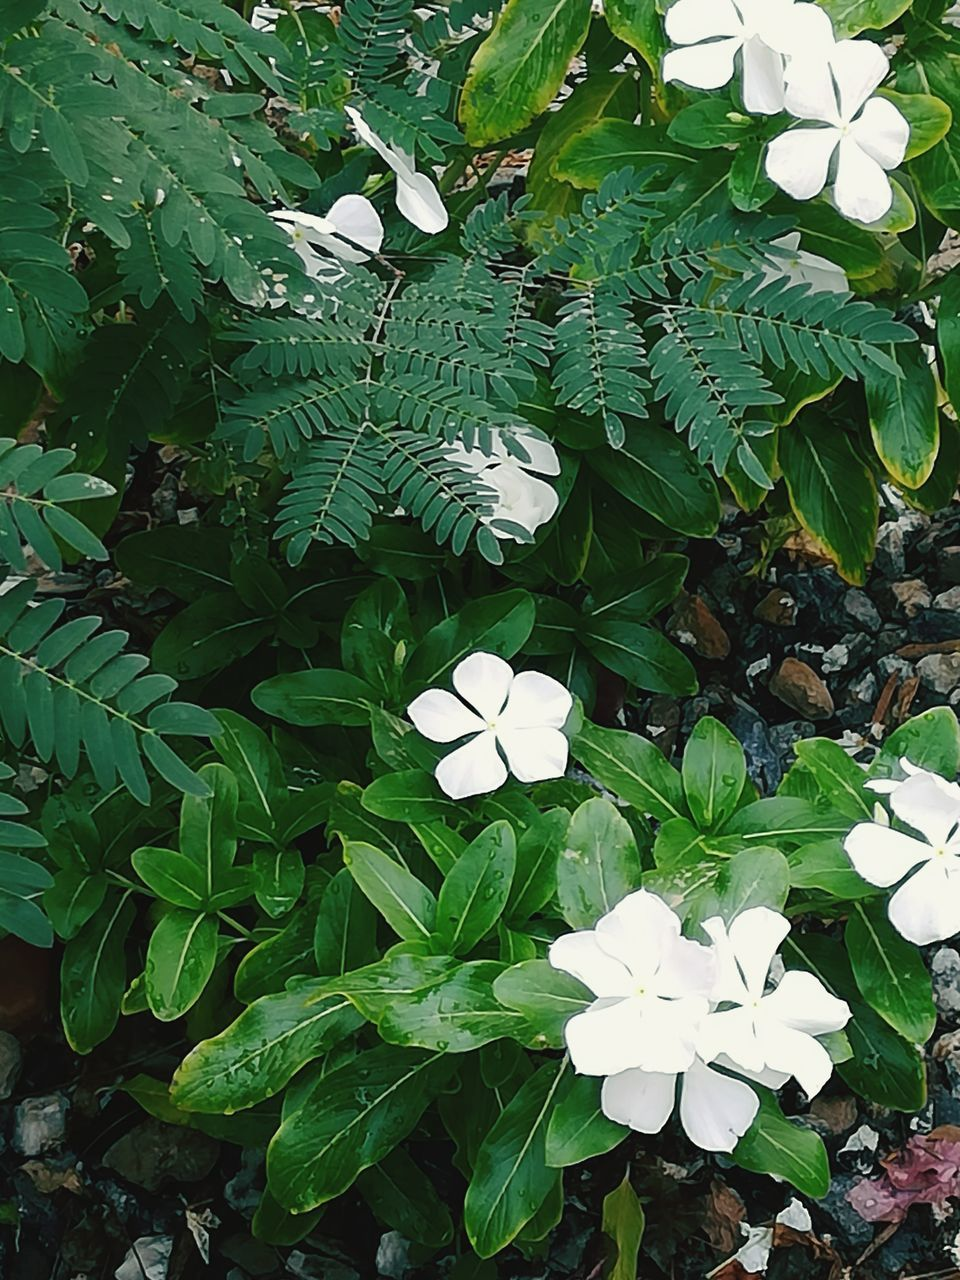 plant, growth, beauty in nature, leaf, plant part, freshness, white color, green color, flower, flowering plant, nature, petal, inflorescence, flower head, fragility, high angle view, vulnerability, day, no people, close-up, outdoors